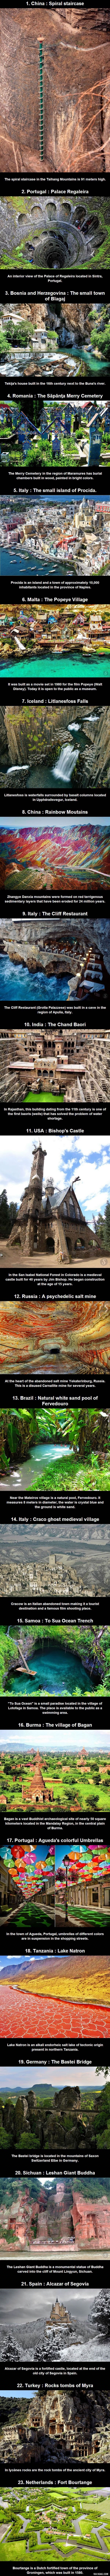 23 places to visit before dying. Take me to all these places now